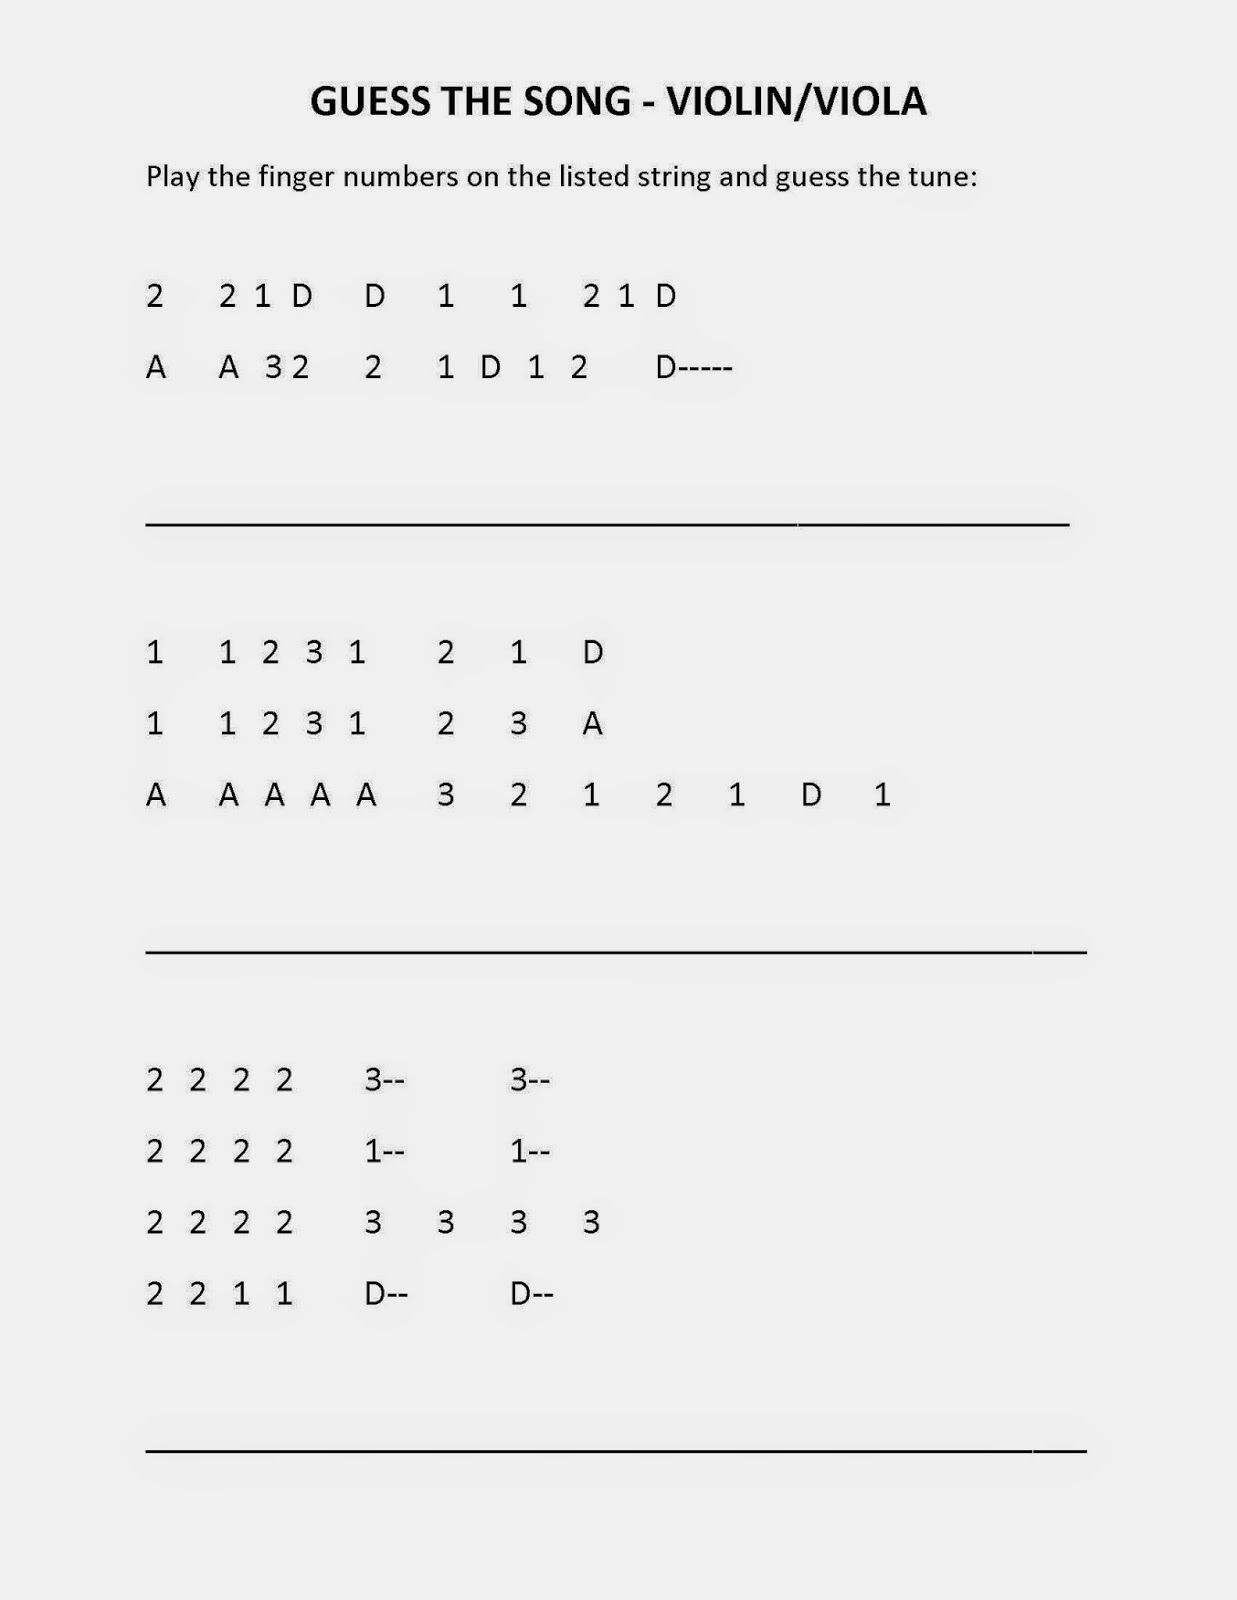 Tunes by finger number for violin, viola, cello and bass